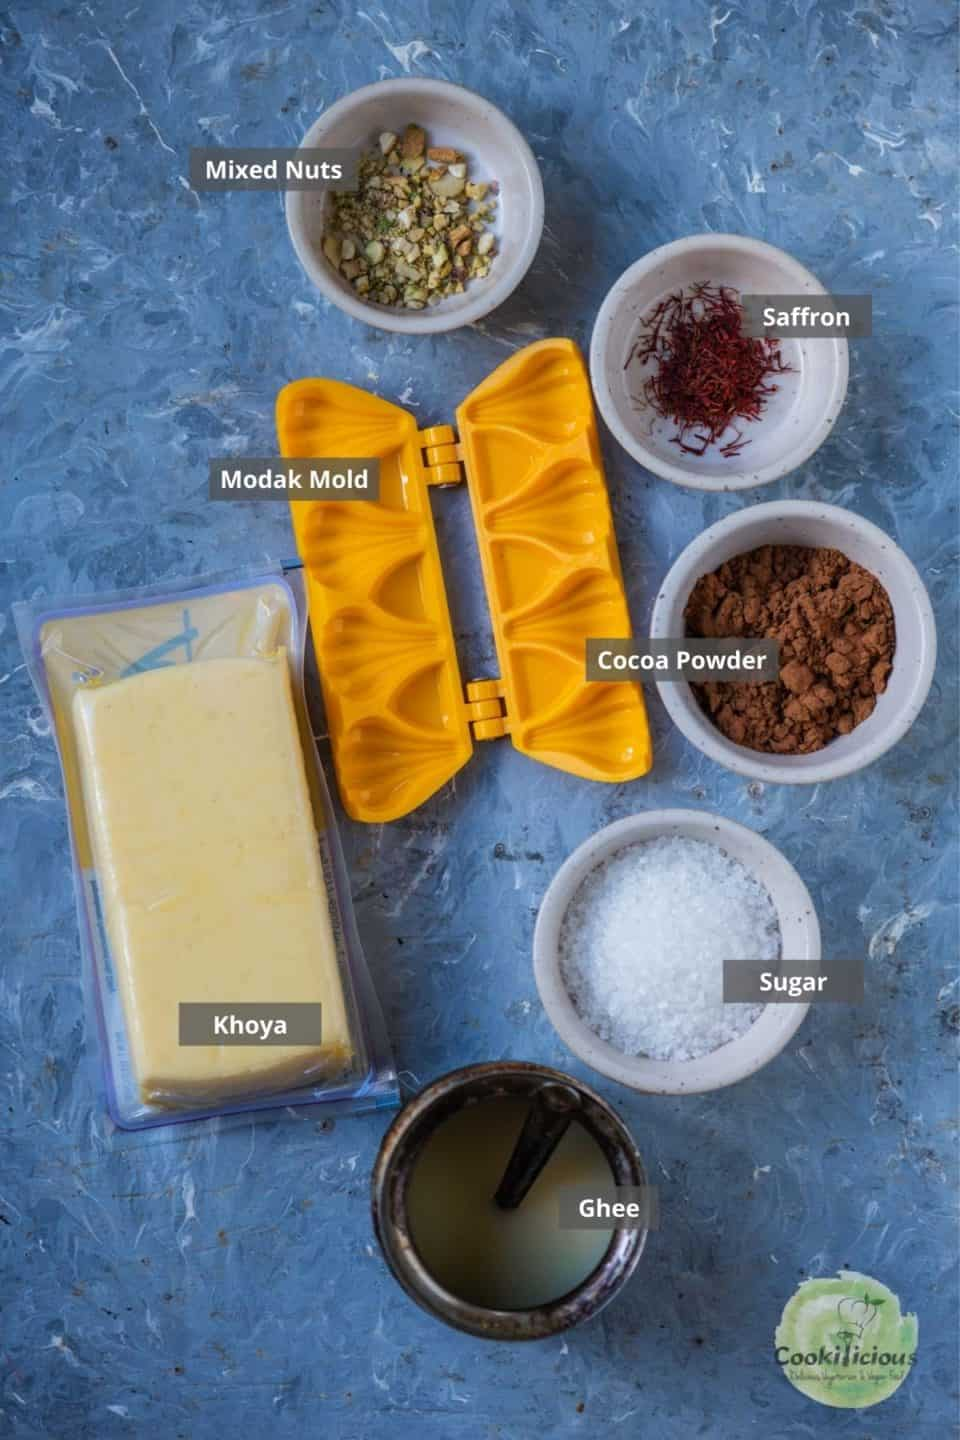 all the ingredients required to make Chocolate Mawa Modak placed on a table with labels on them